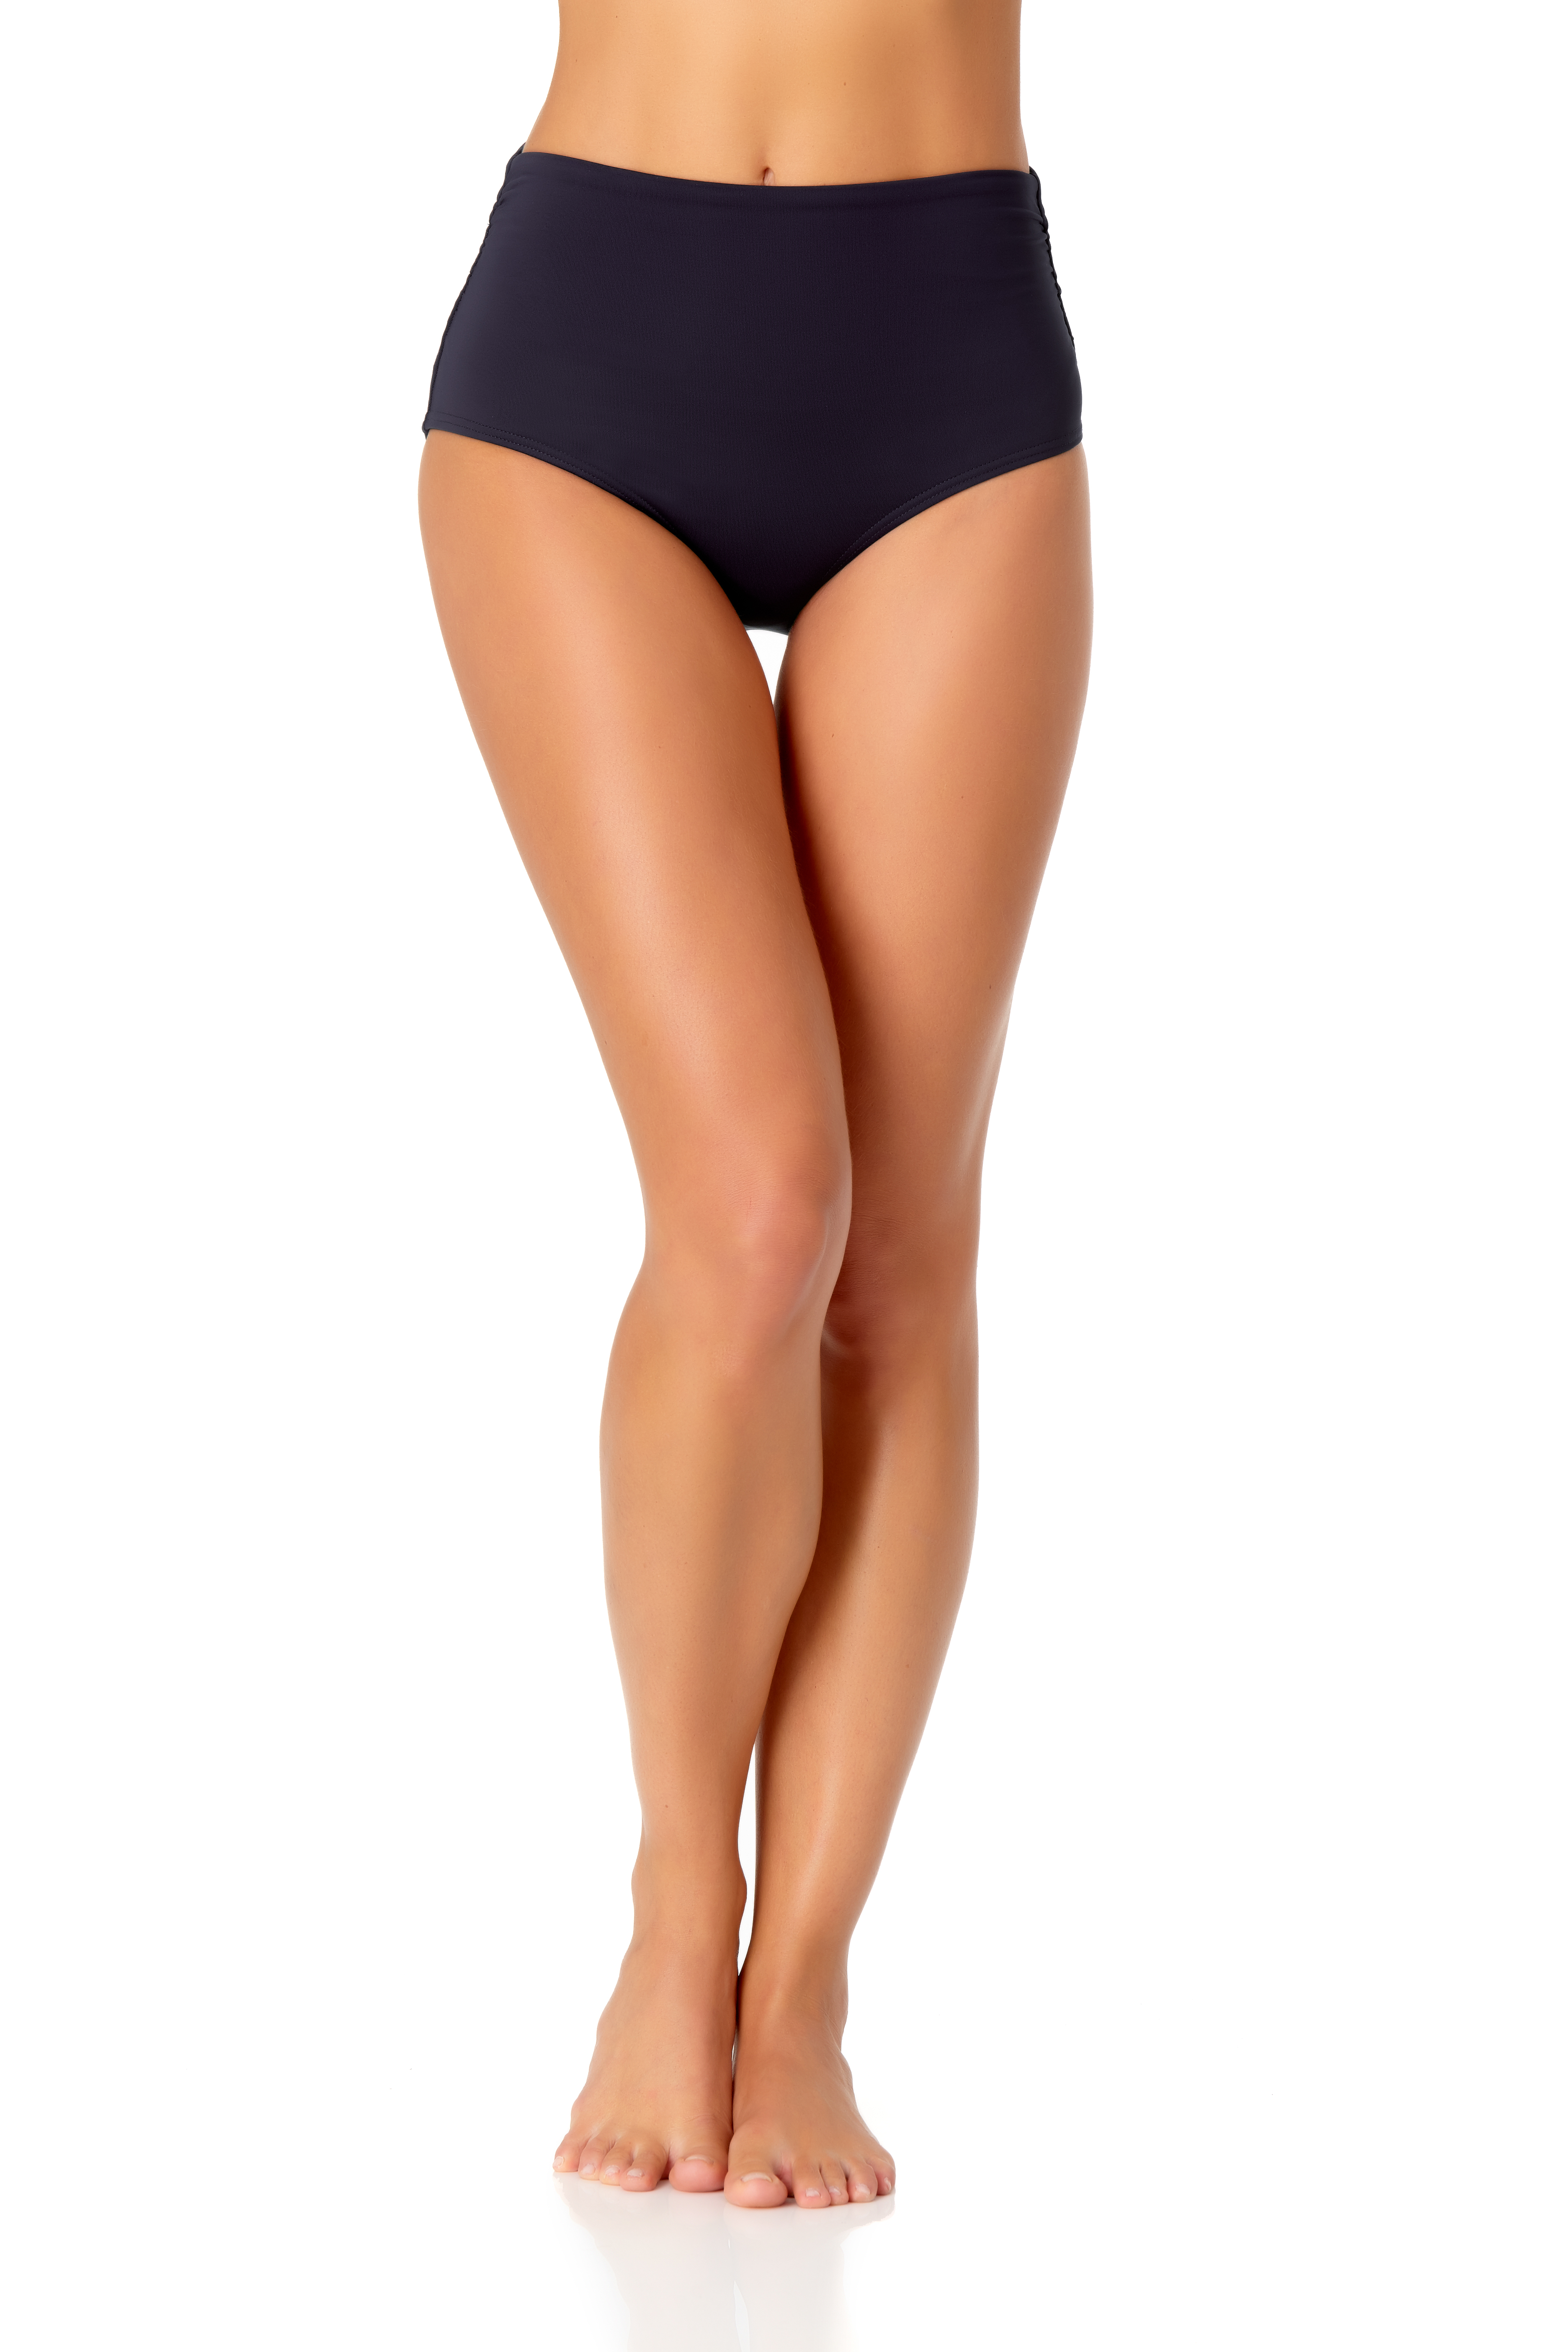 Anne Cole® Live in Color Hi Waist Shirred Bikini Swimsuit Bottom -Navy - Front